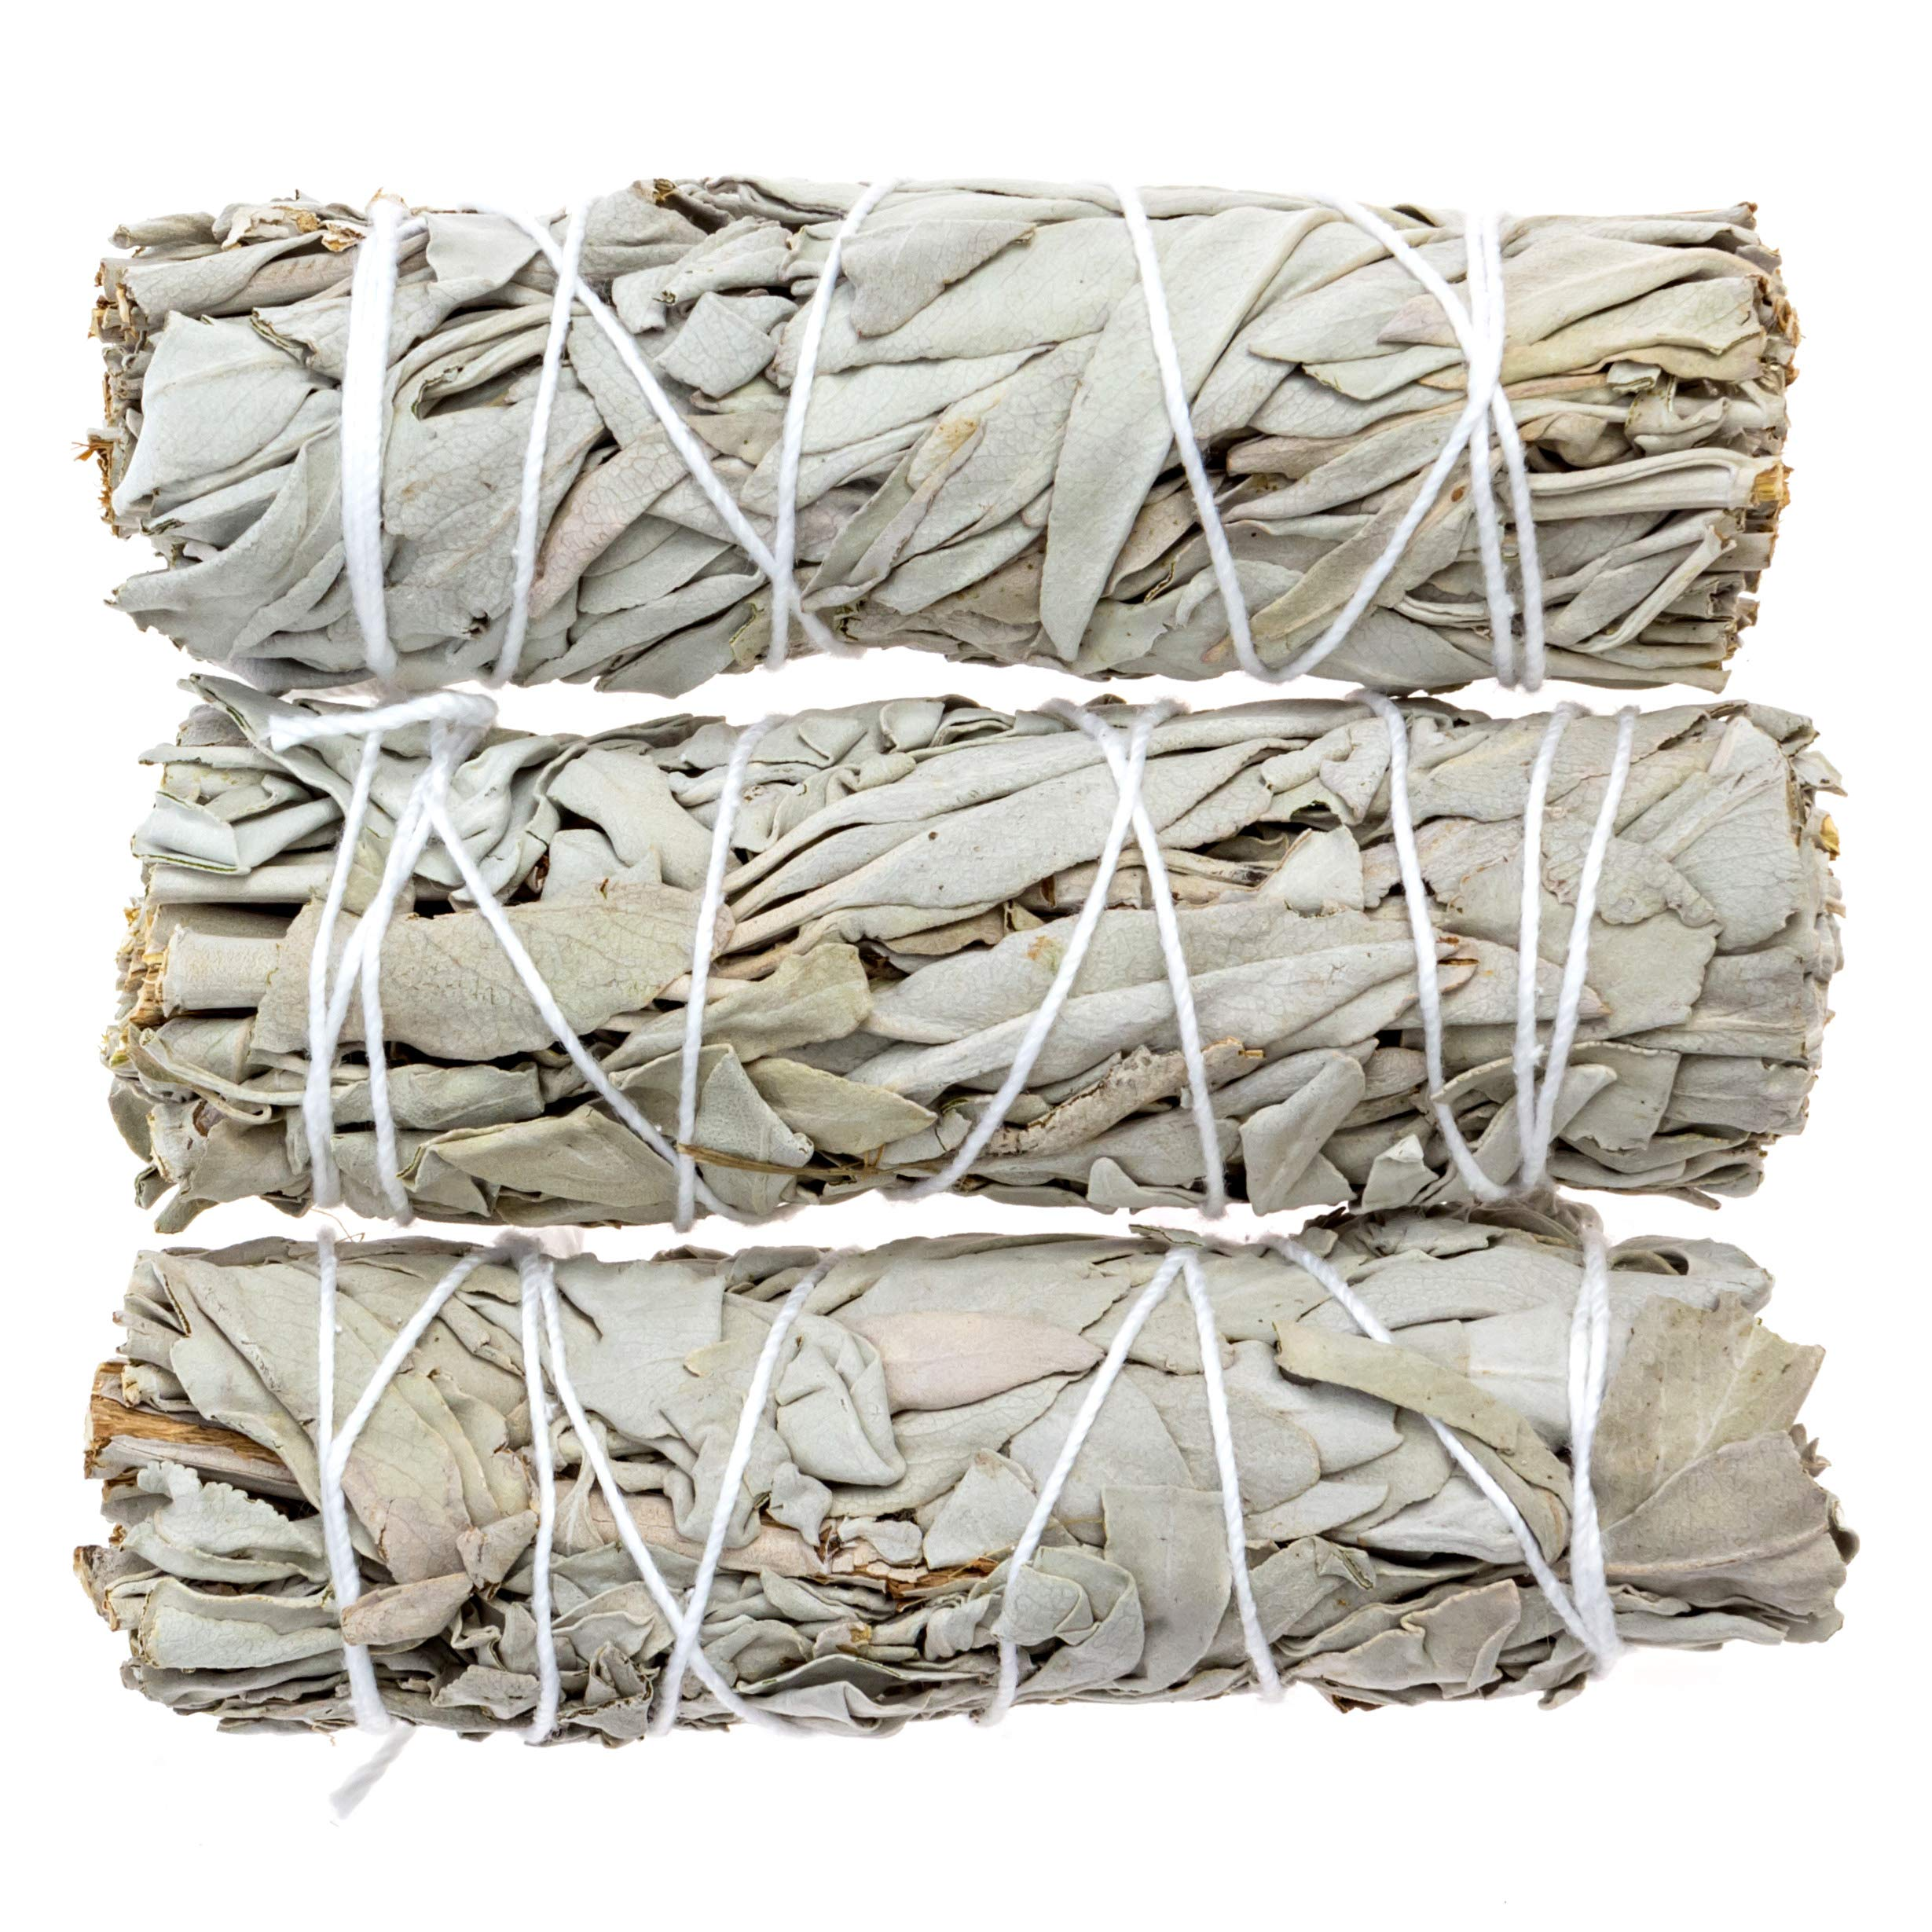 Big Lost Goods 3 Pack, Premium White Sage Smudge Sticks, Mini Bundles 4-5'' Long, Organically Grown in California. Use for: smudging, Energy Cleansing, and Meditation by Big Lost Goods (Image #4)